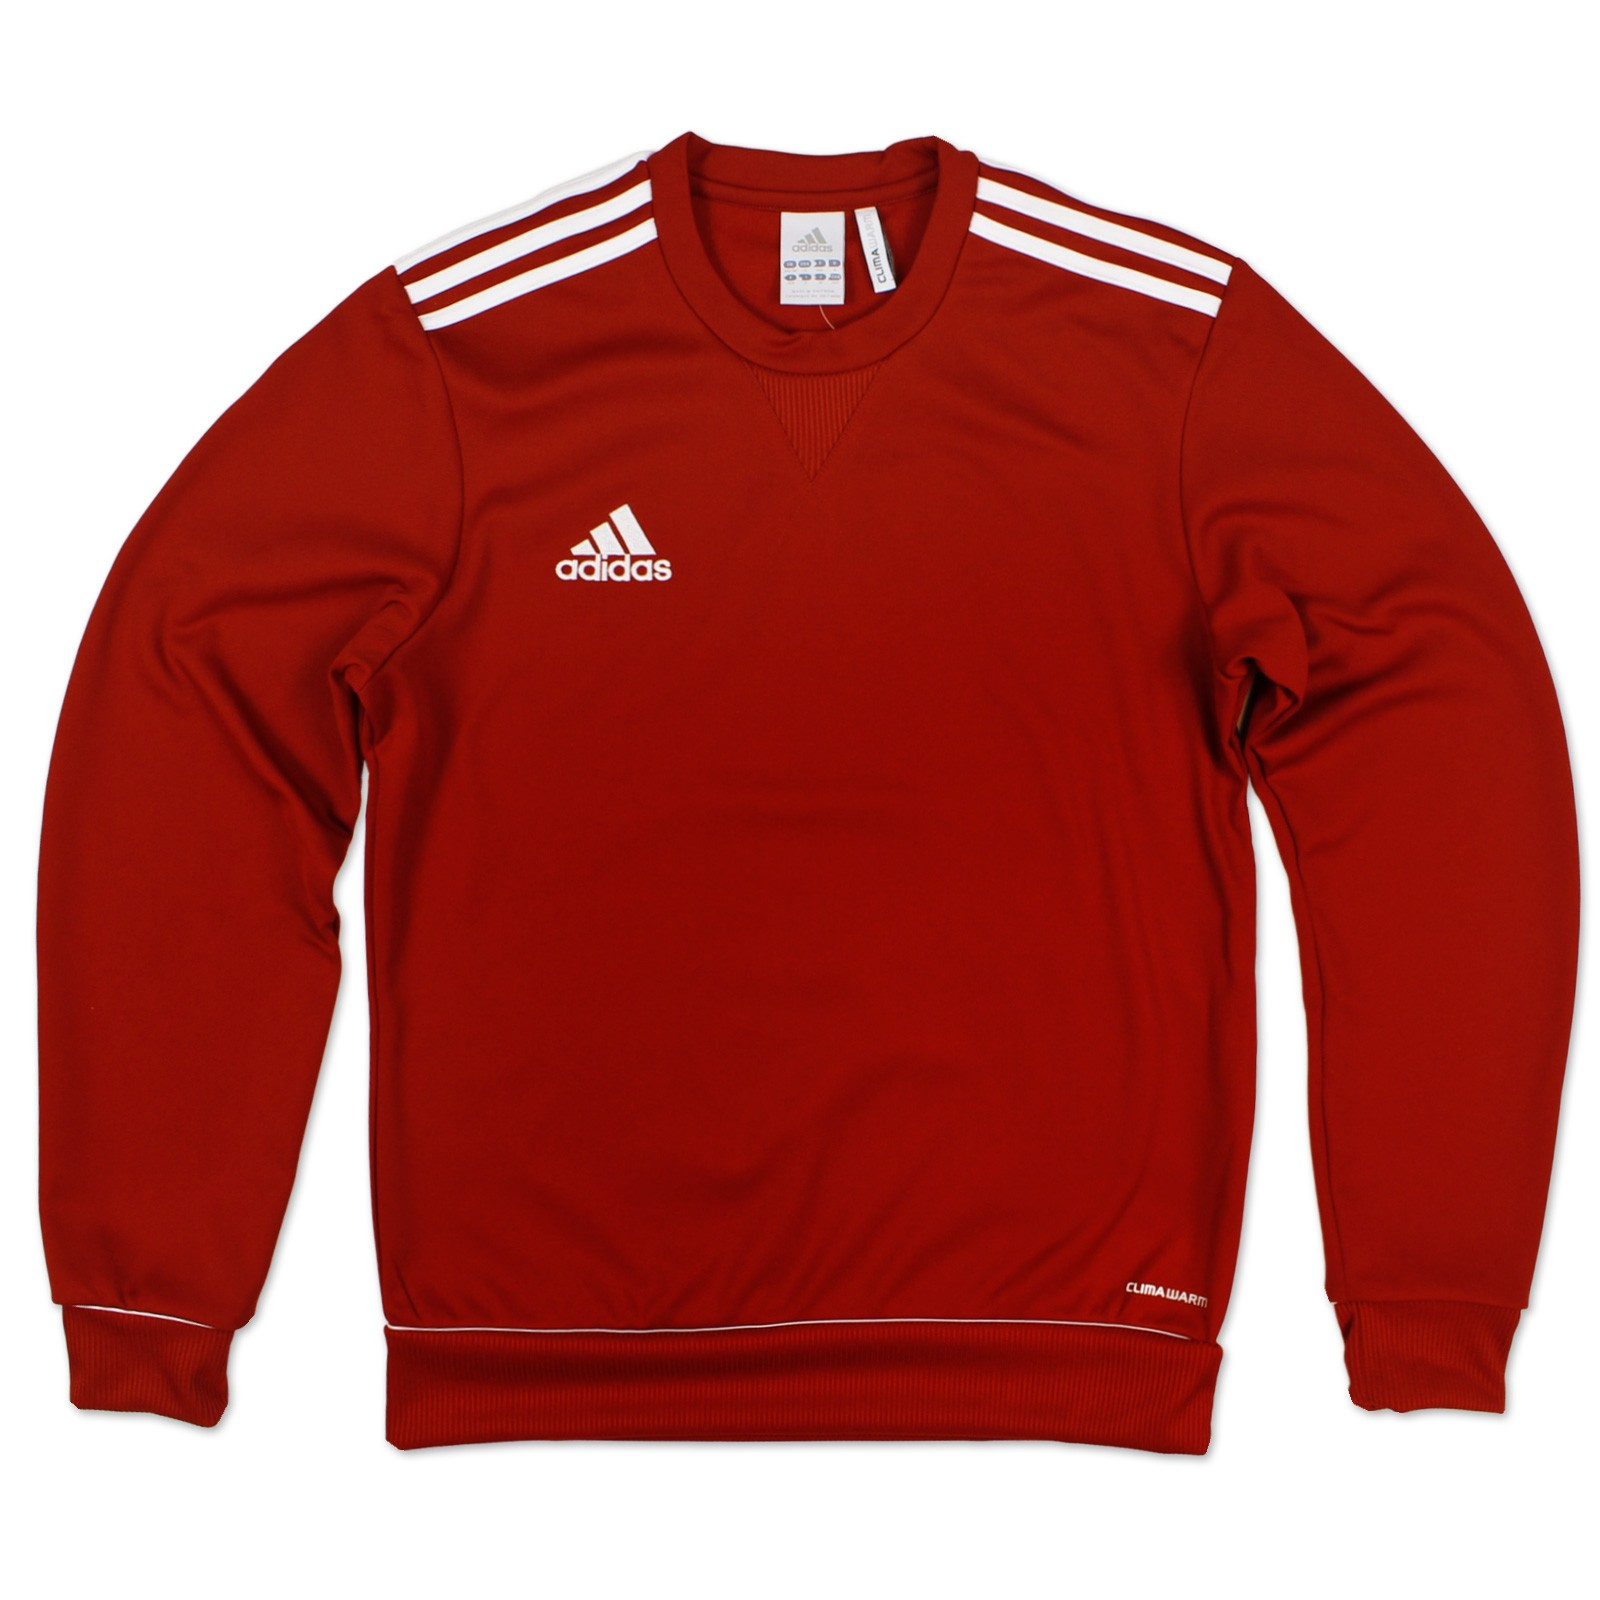 adidas performance herren core 11 swt top sweatshirt. Black Bedroom Furniture Sets. Home Design Ideas